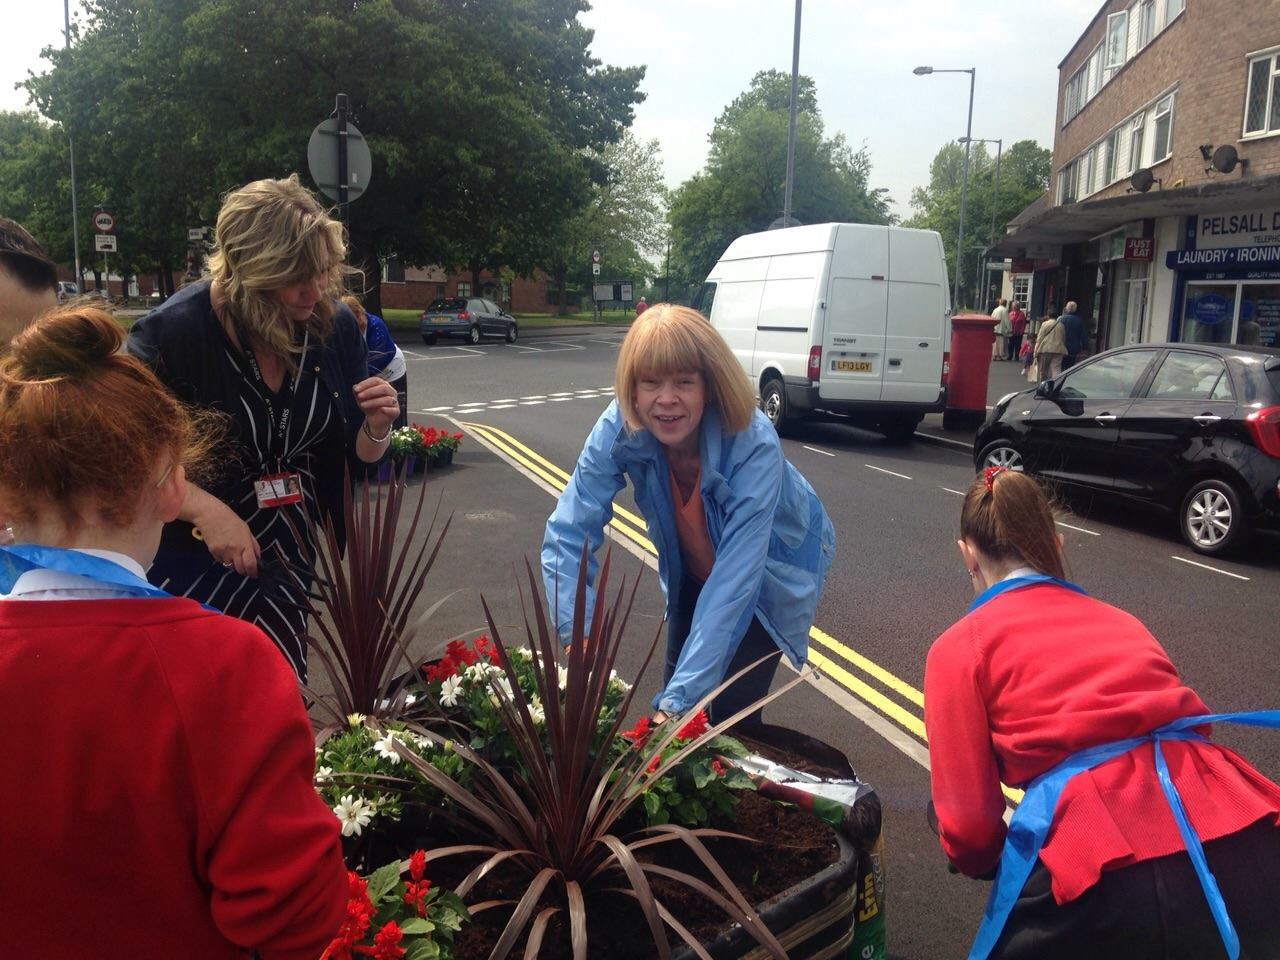 Questions in Westminster, Greenfingers in Pelsall and an Igloo in Brownhills